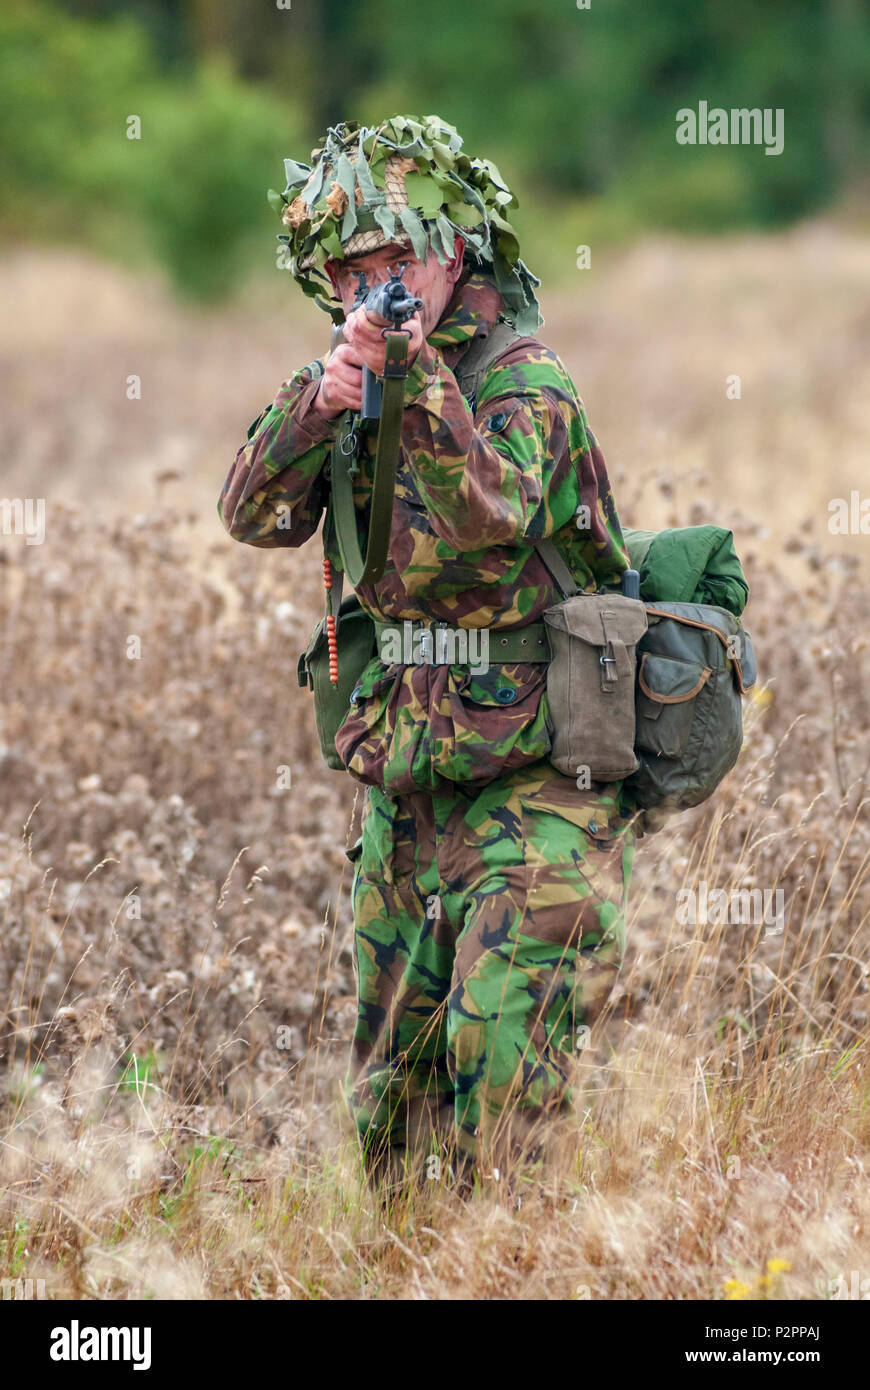 1970 – 1980 British Army soldier in camouflage suit and steel helmet carrying a SLR (Self-Loading Rifle) L1A1 - calibre of 7.62 mm (Posed by Actor) - Stock Image